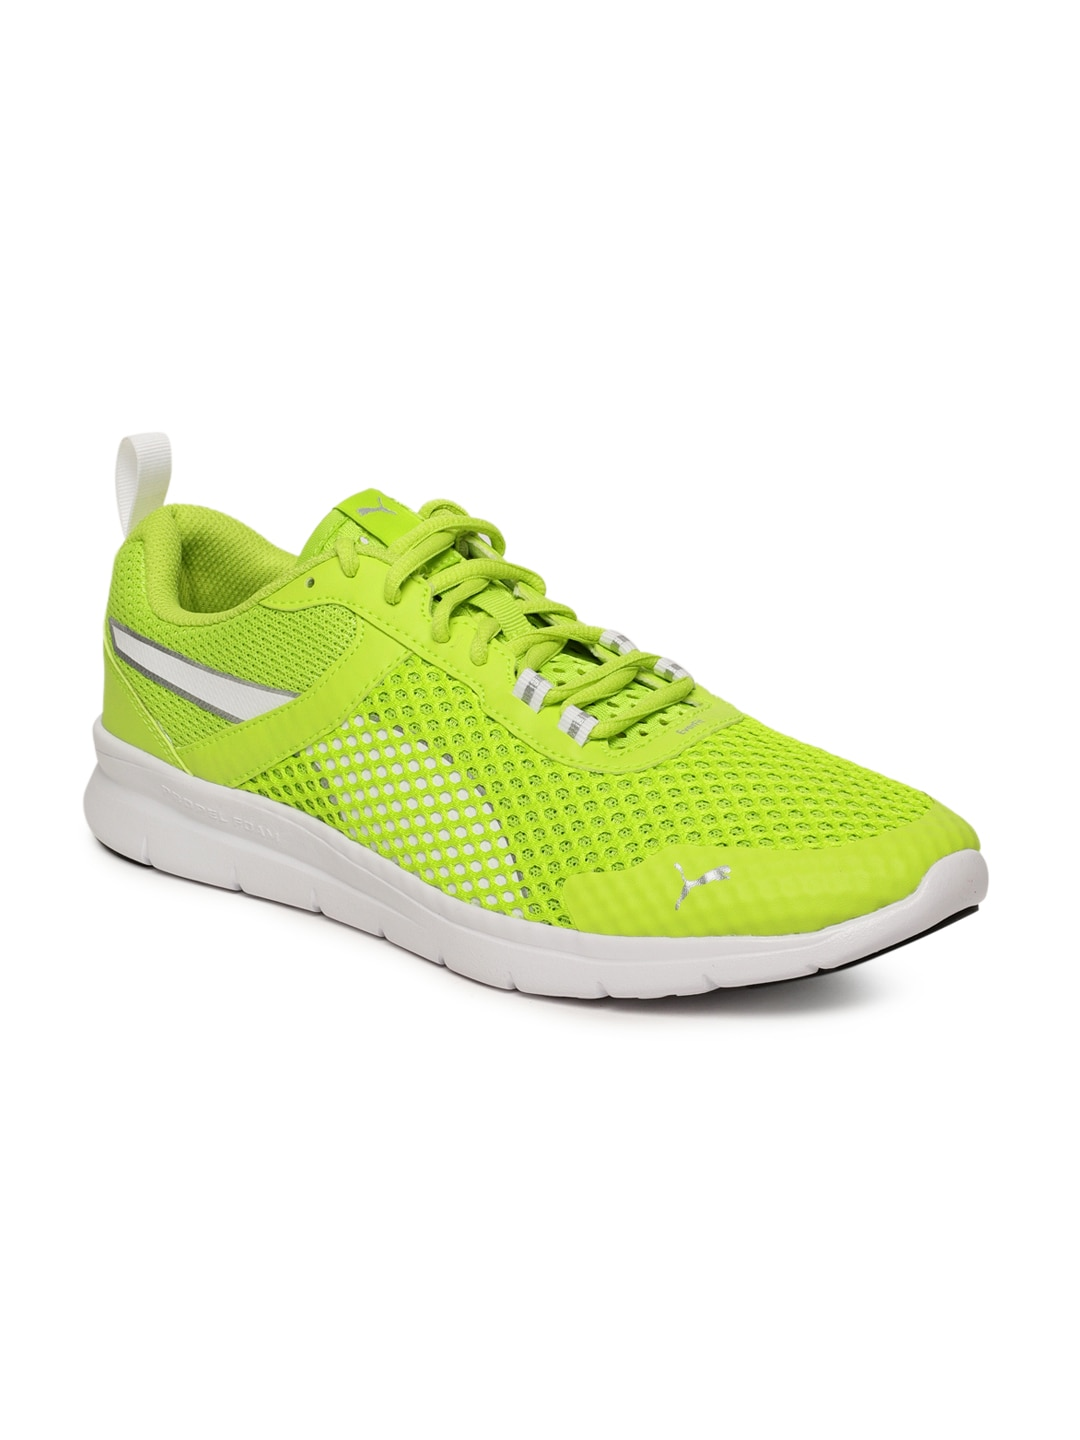 Puma Mobium Ride Green Running Shoes for Men online in India at Best ... 88a849843